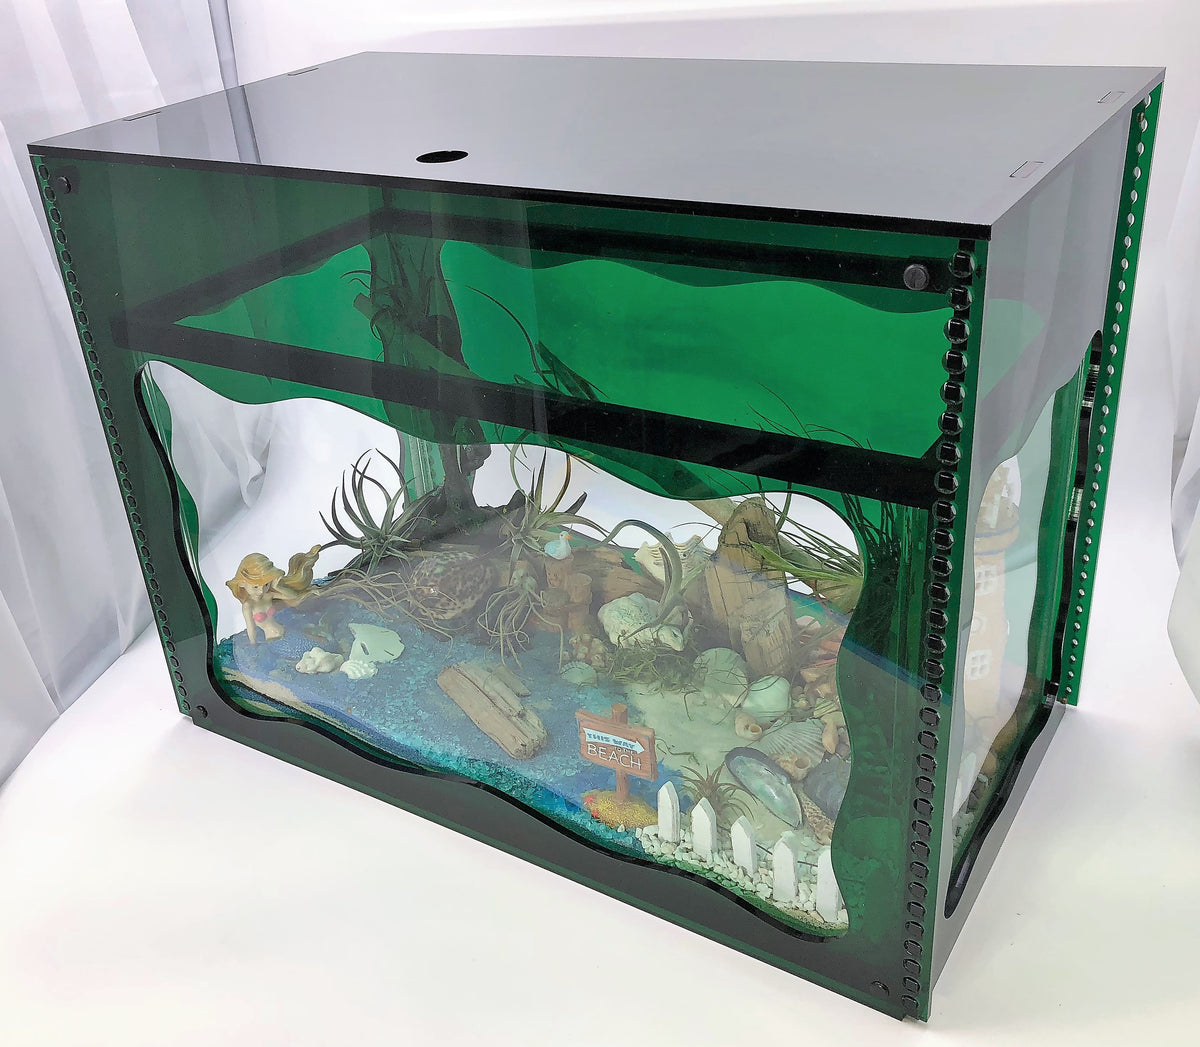 Aquarium Treasure Chest Cover - Emerald Green - Aquaterra Tank Decor